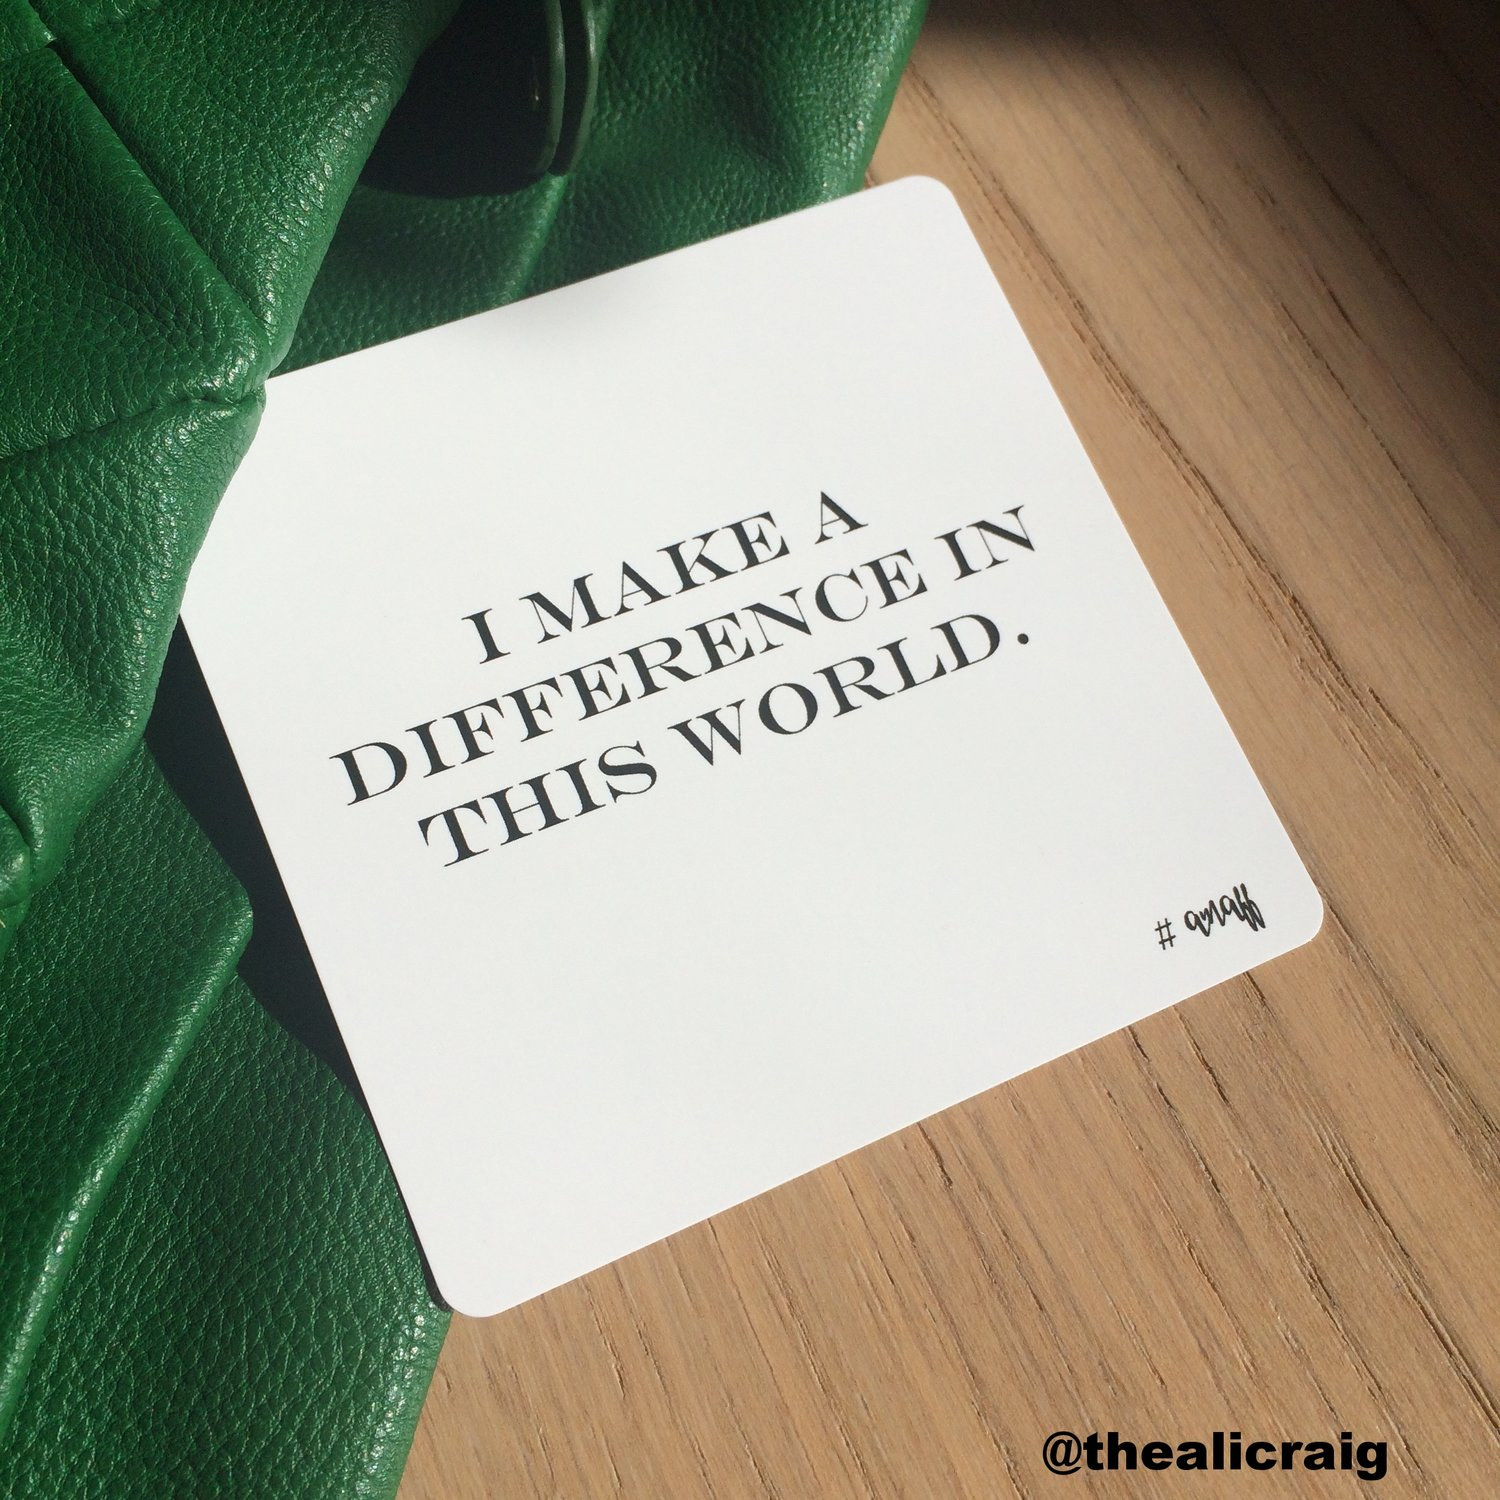 i-make-a-difference-in-this-world.jpg